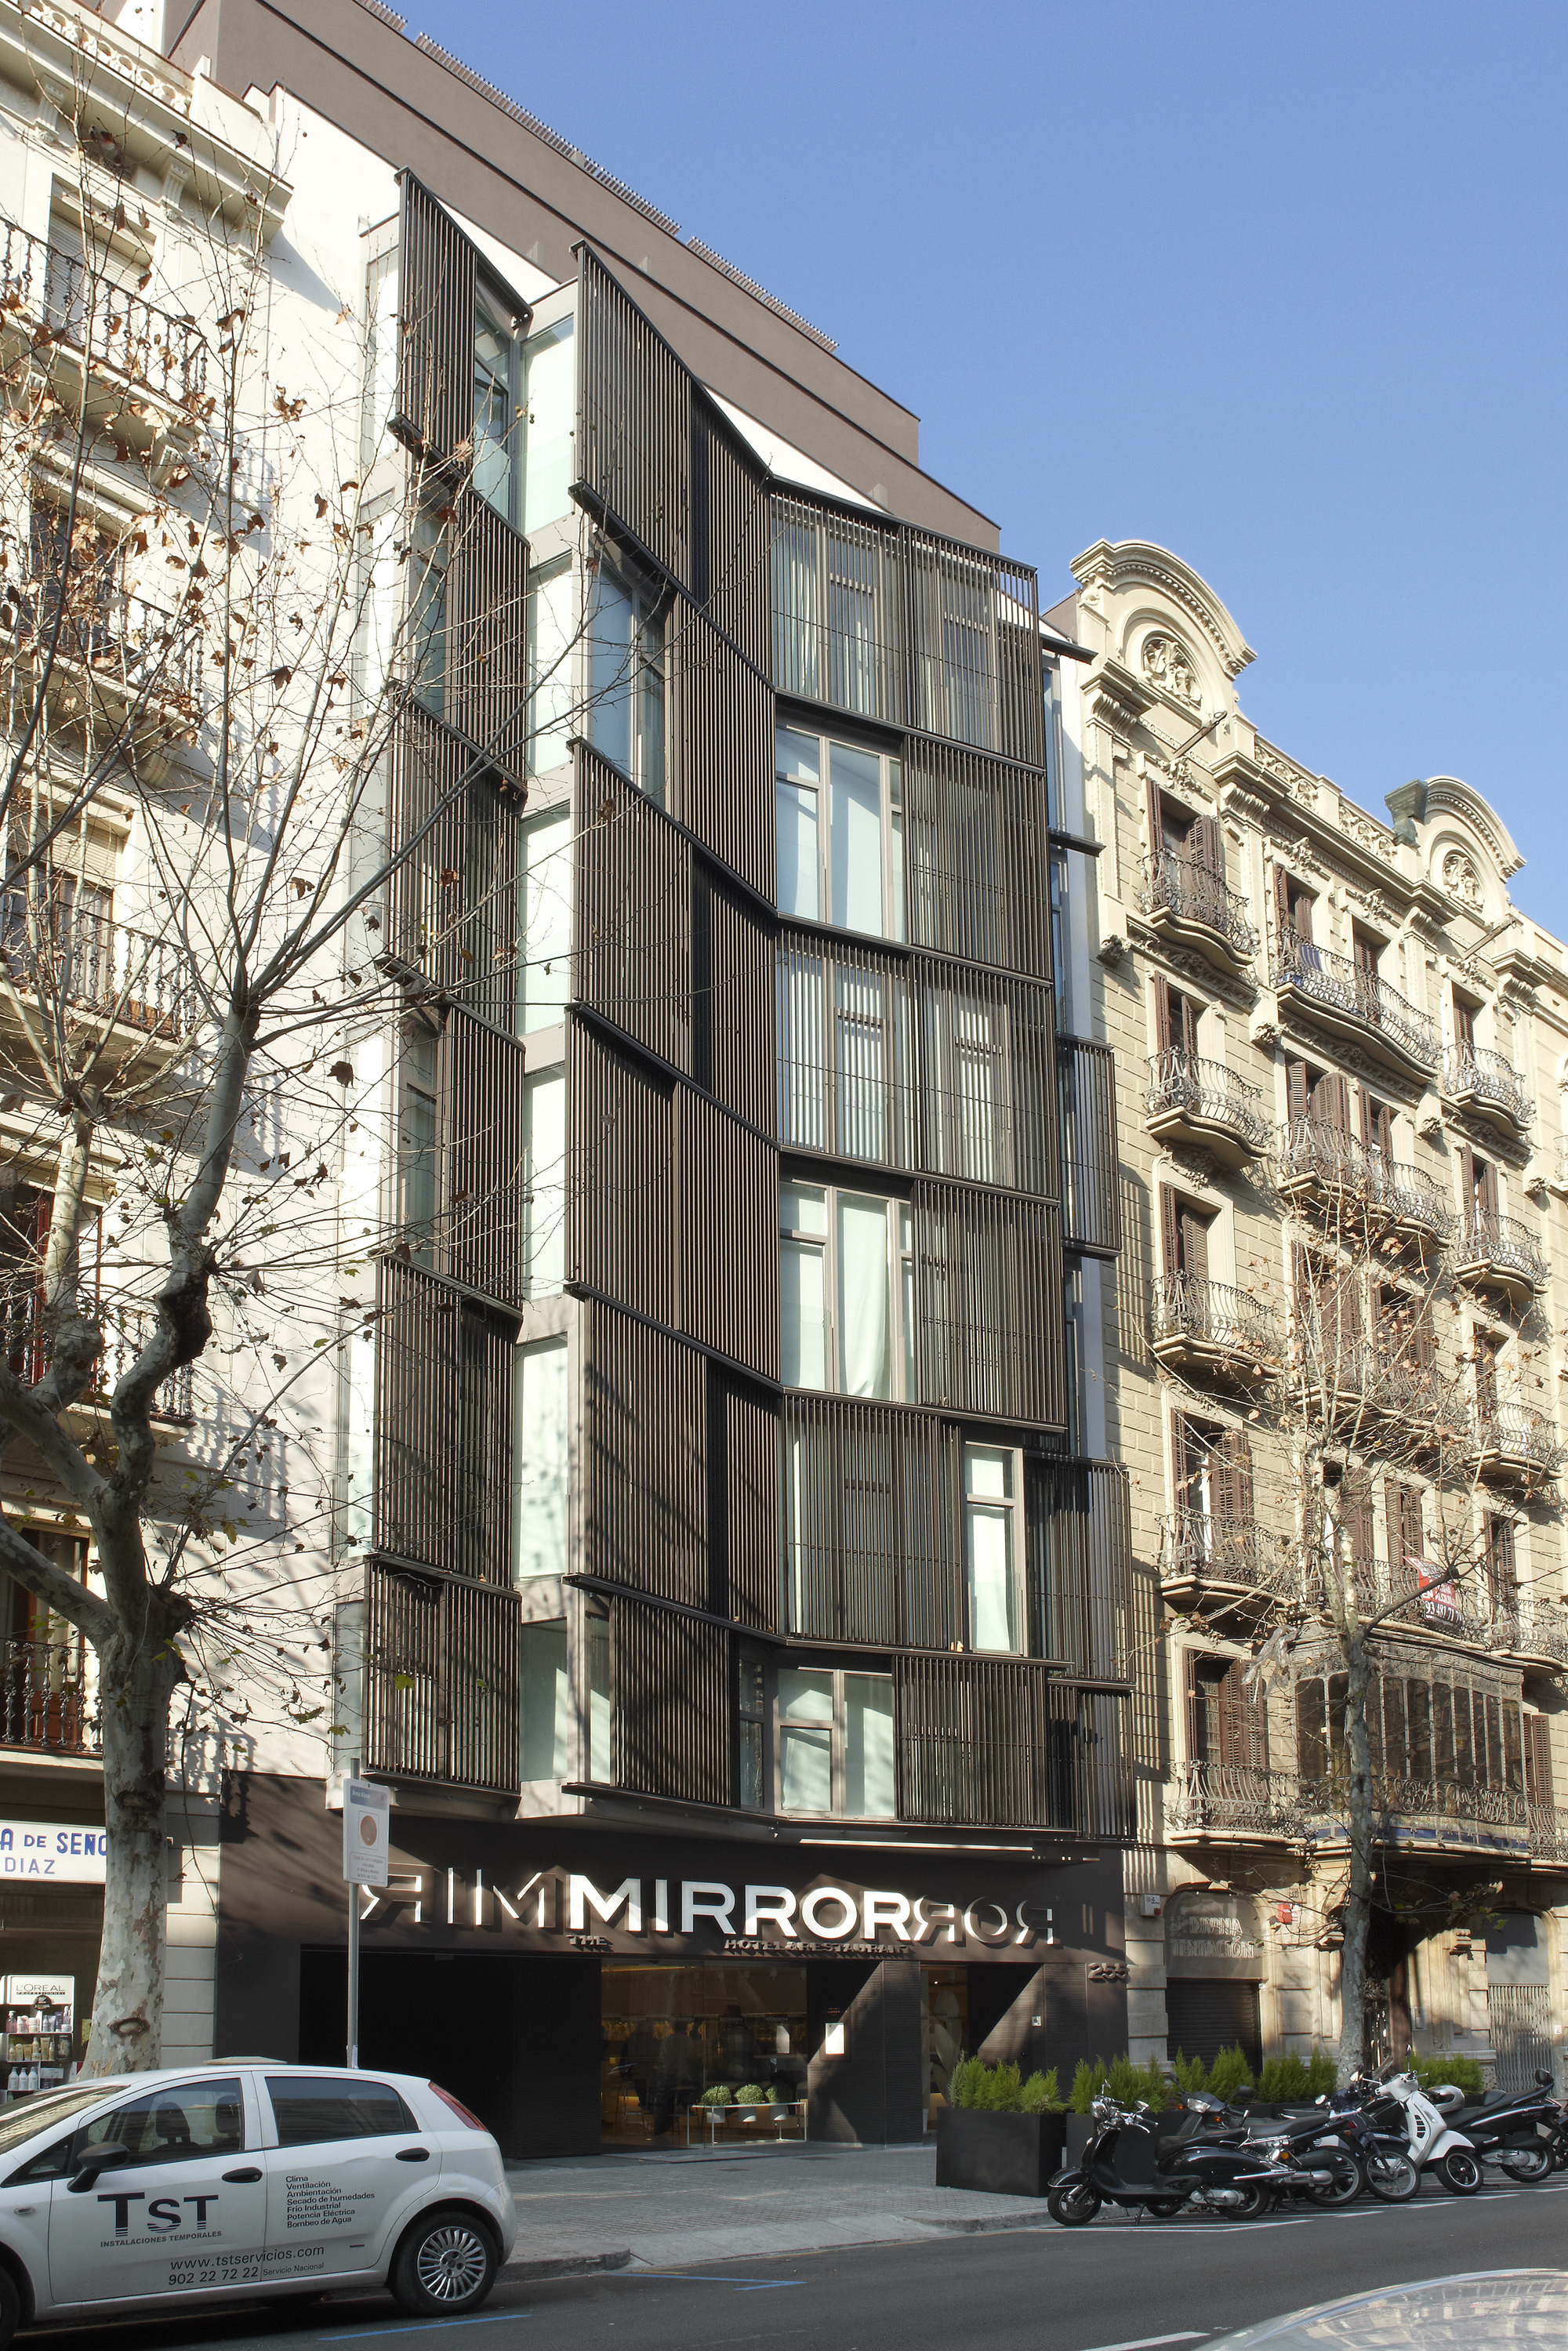 Hotel the mirror barcelona gca arquitectes plataforma for Mirror hotel